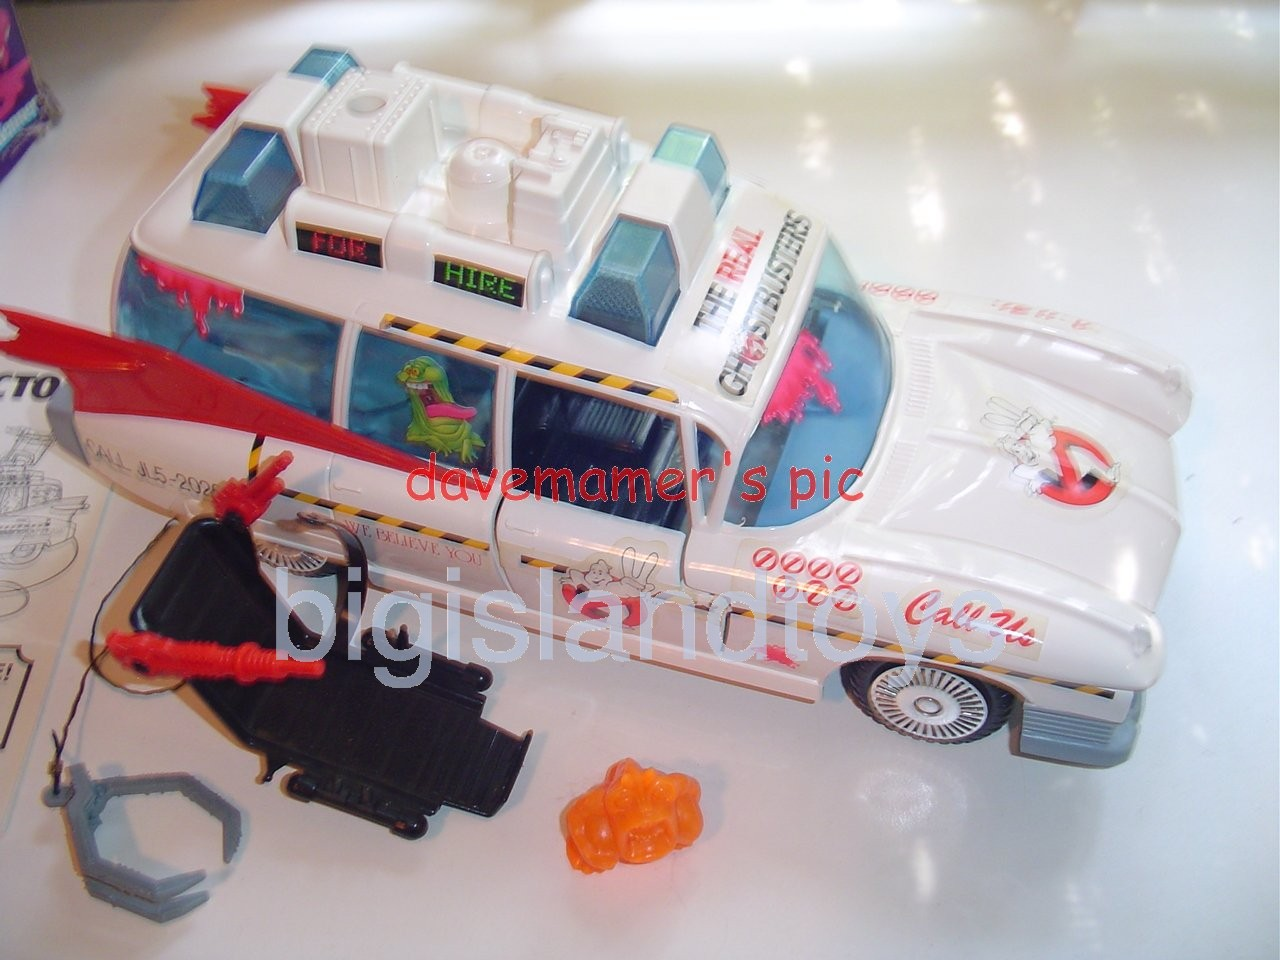 Real Ghostbusters Vehicles   ECTO-1A Ambulance with Swiveling Blaster Seat